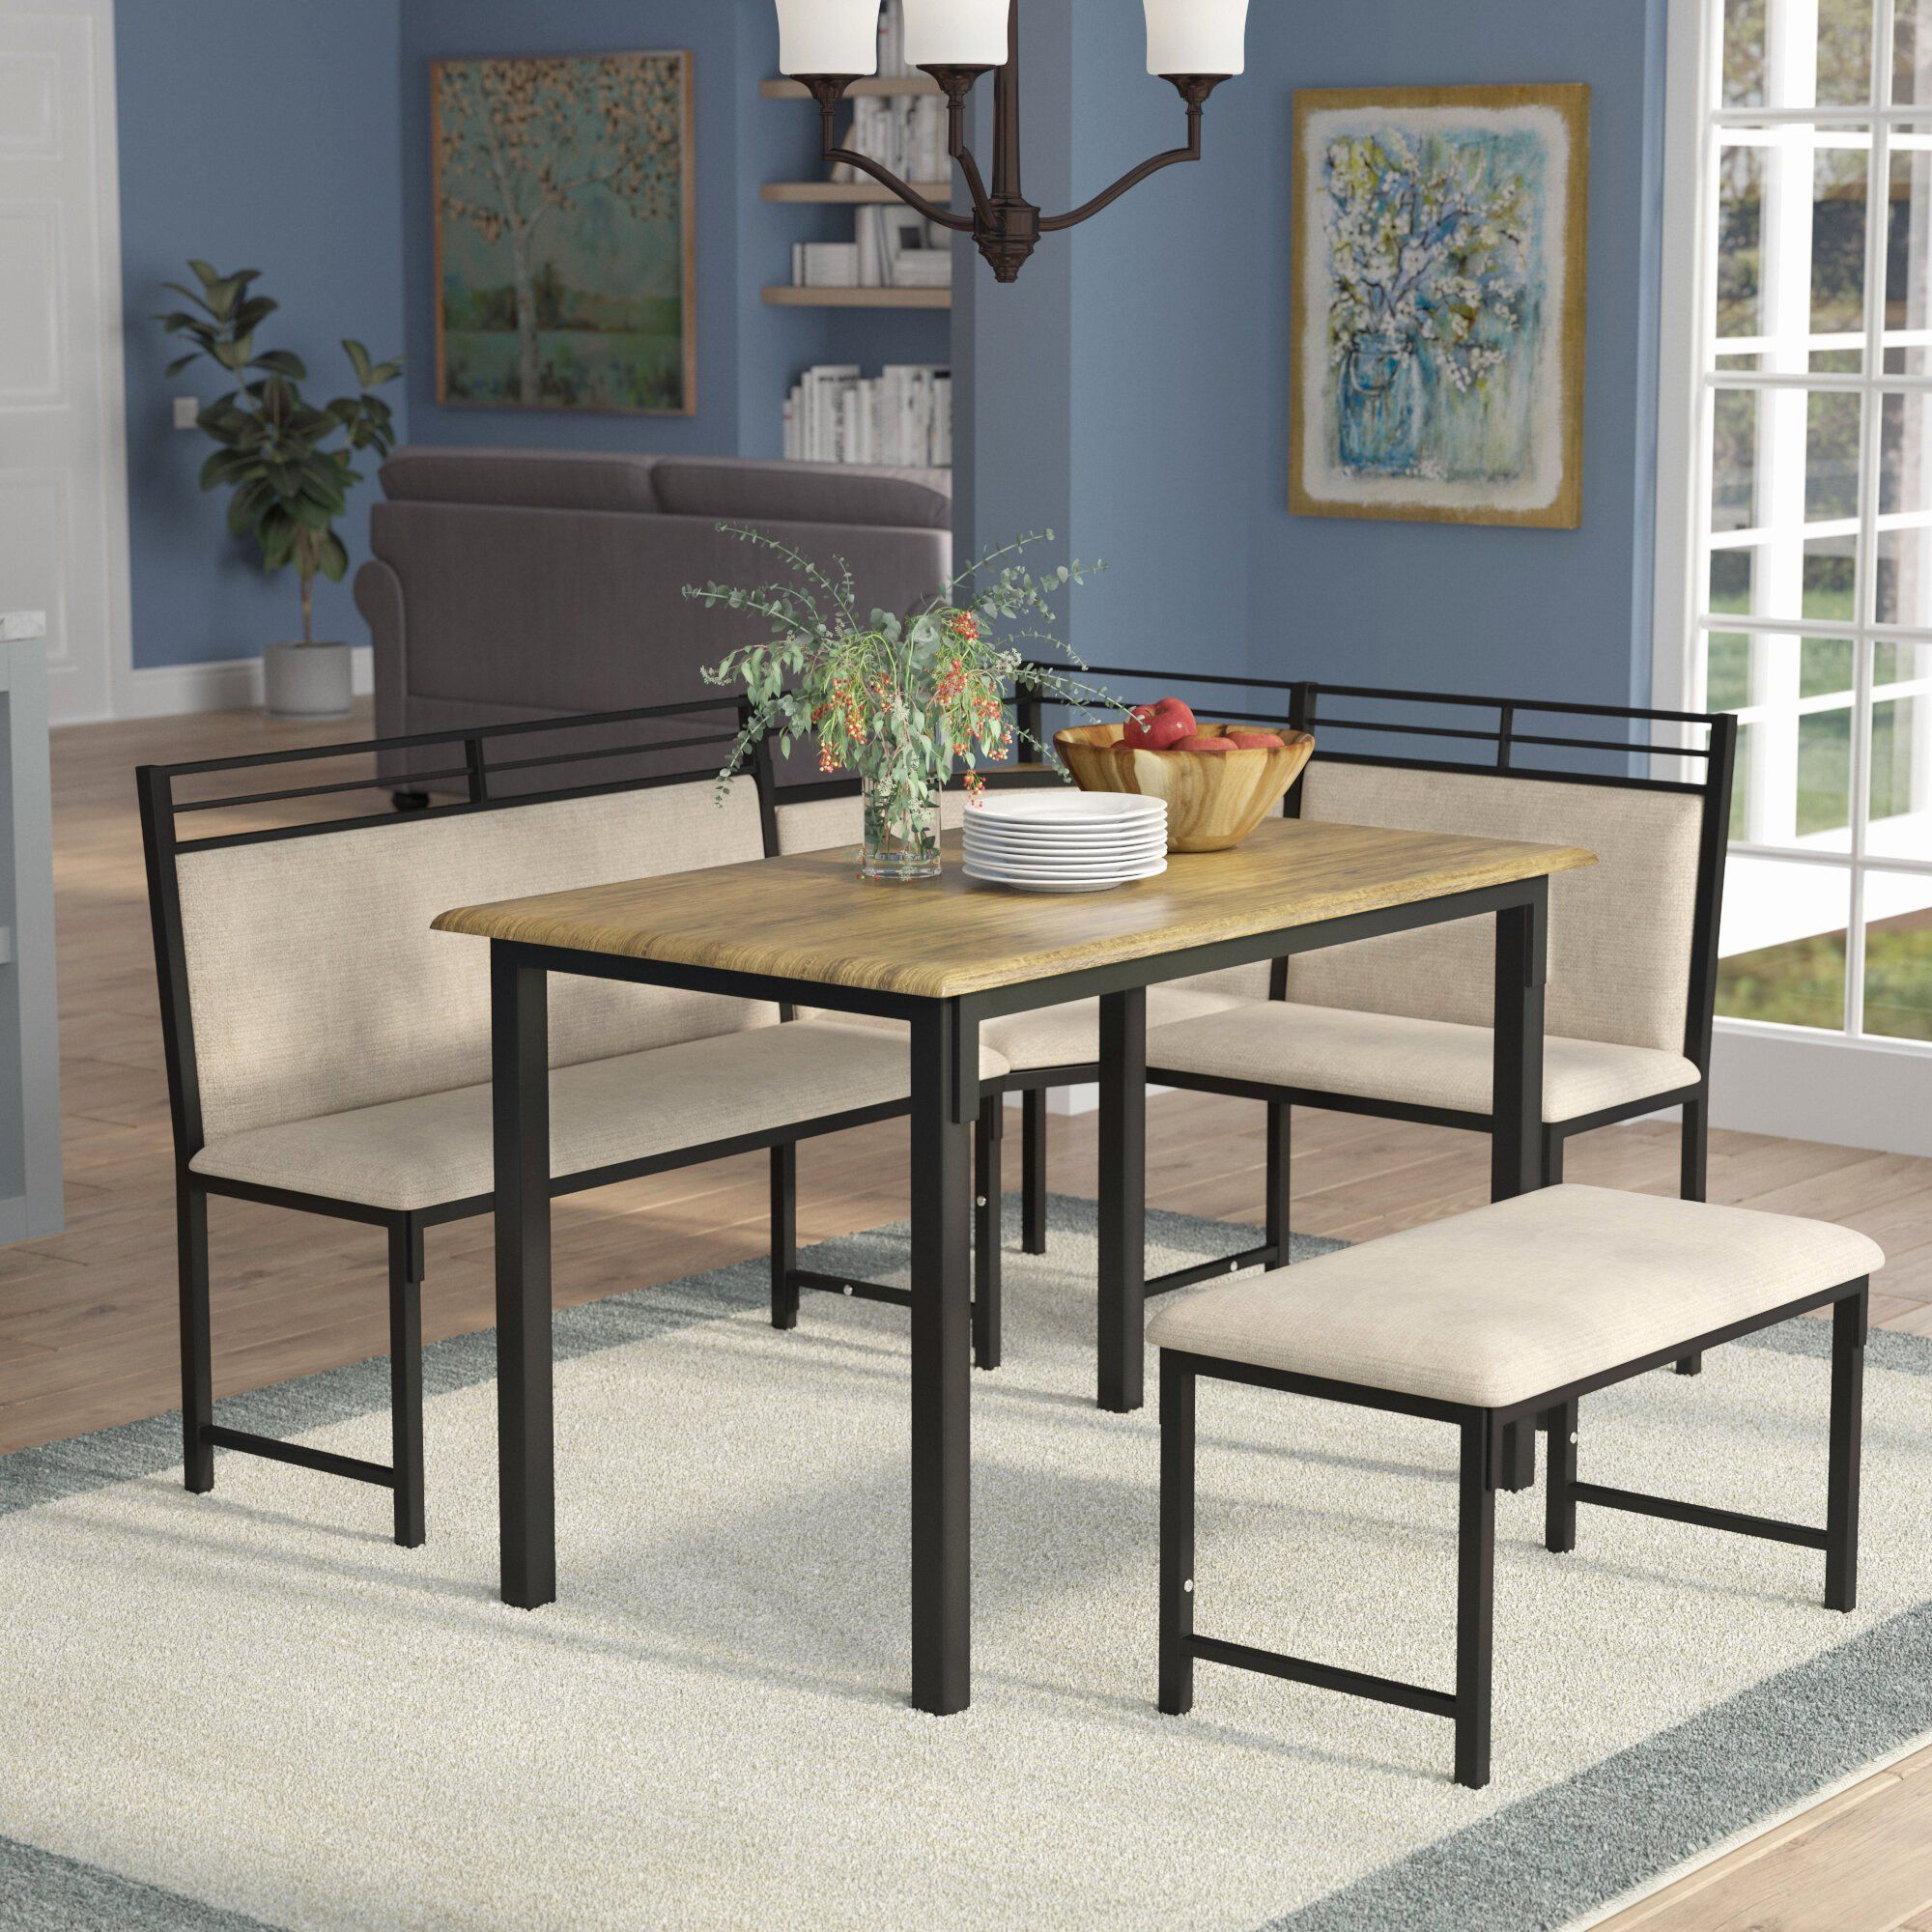 Pin On Dining Chair Design Modern